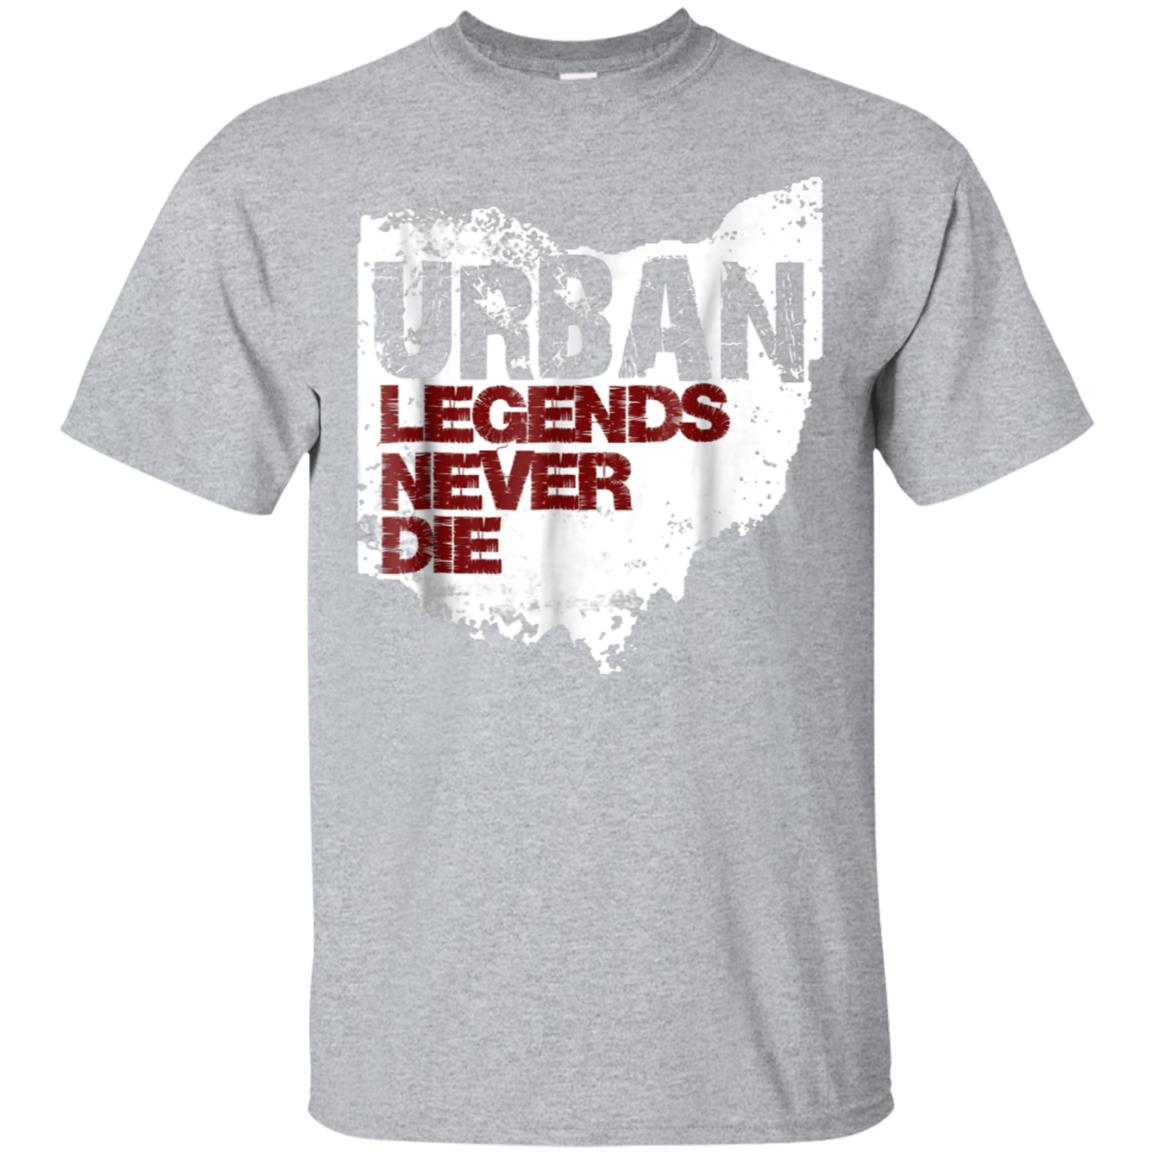 Urban Legends Never Die Ohio State Design Tee 99promocode